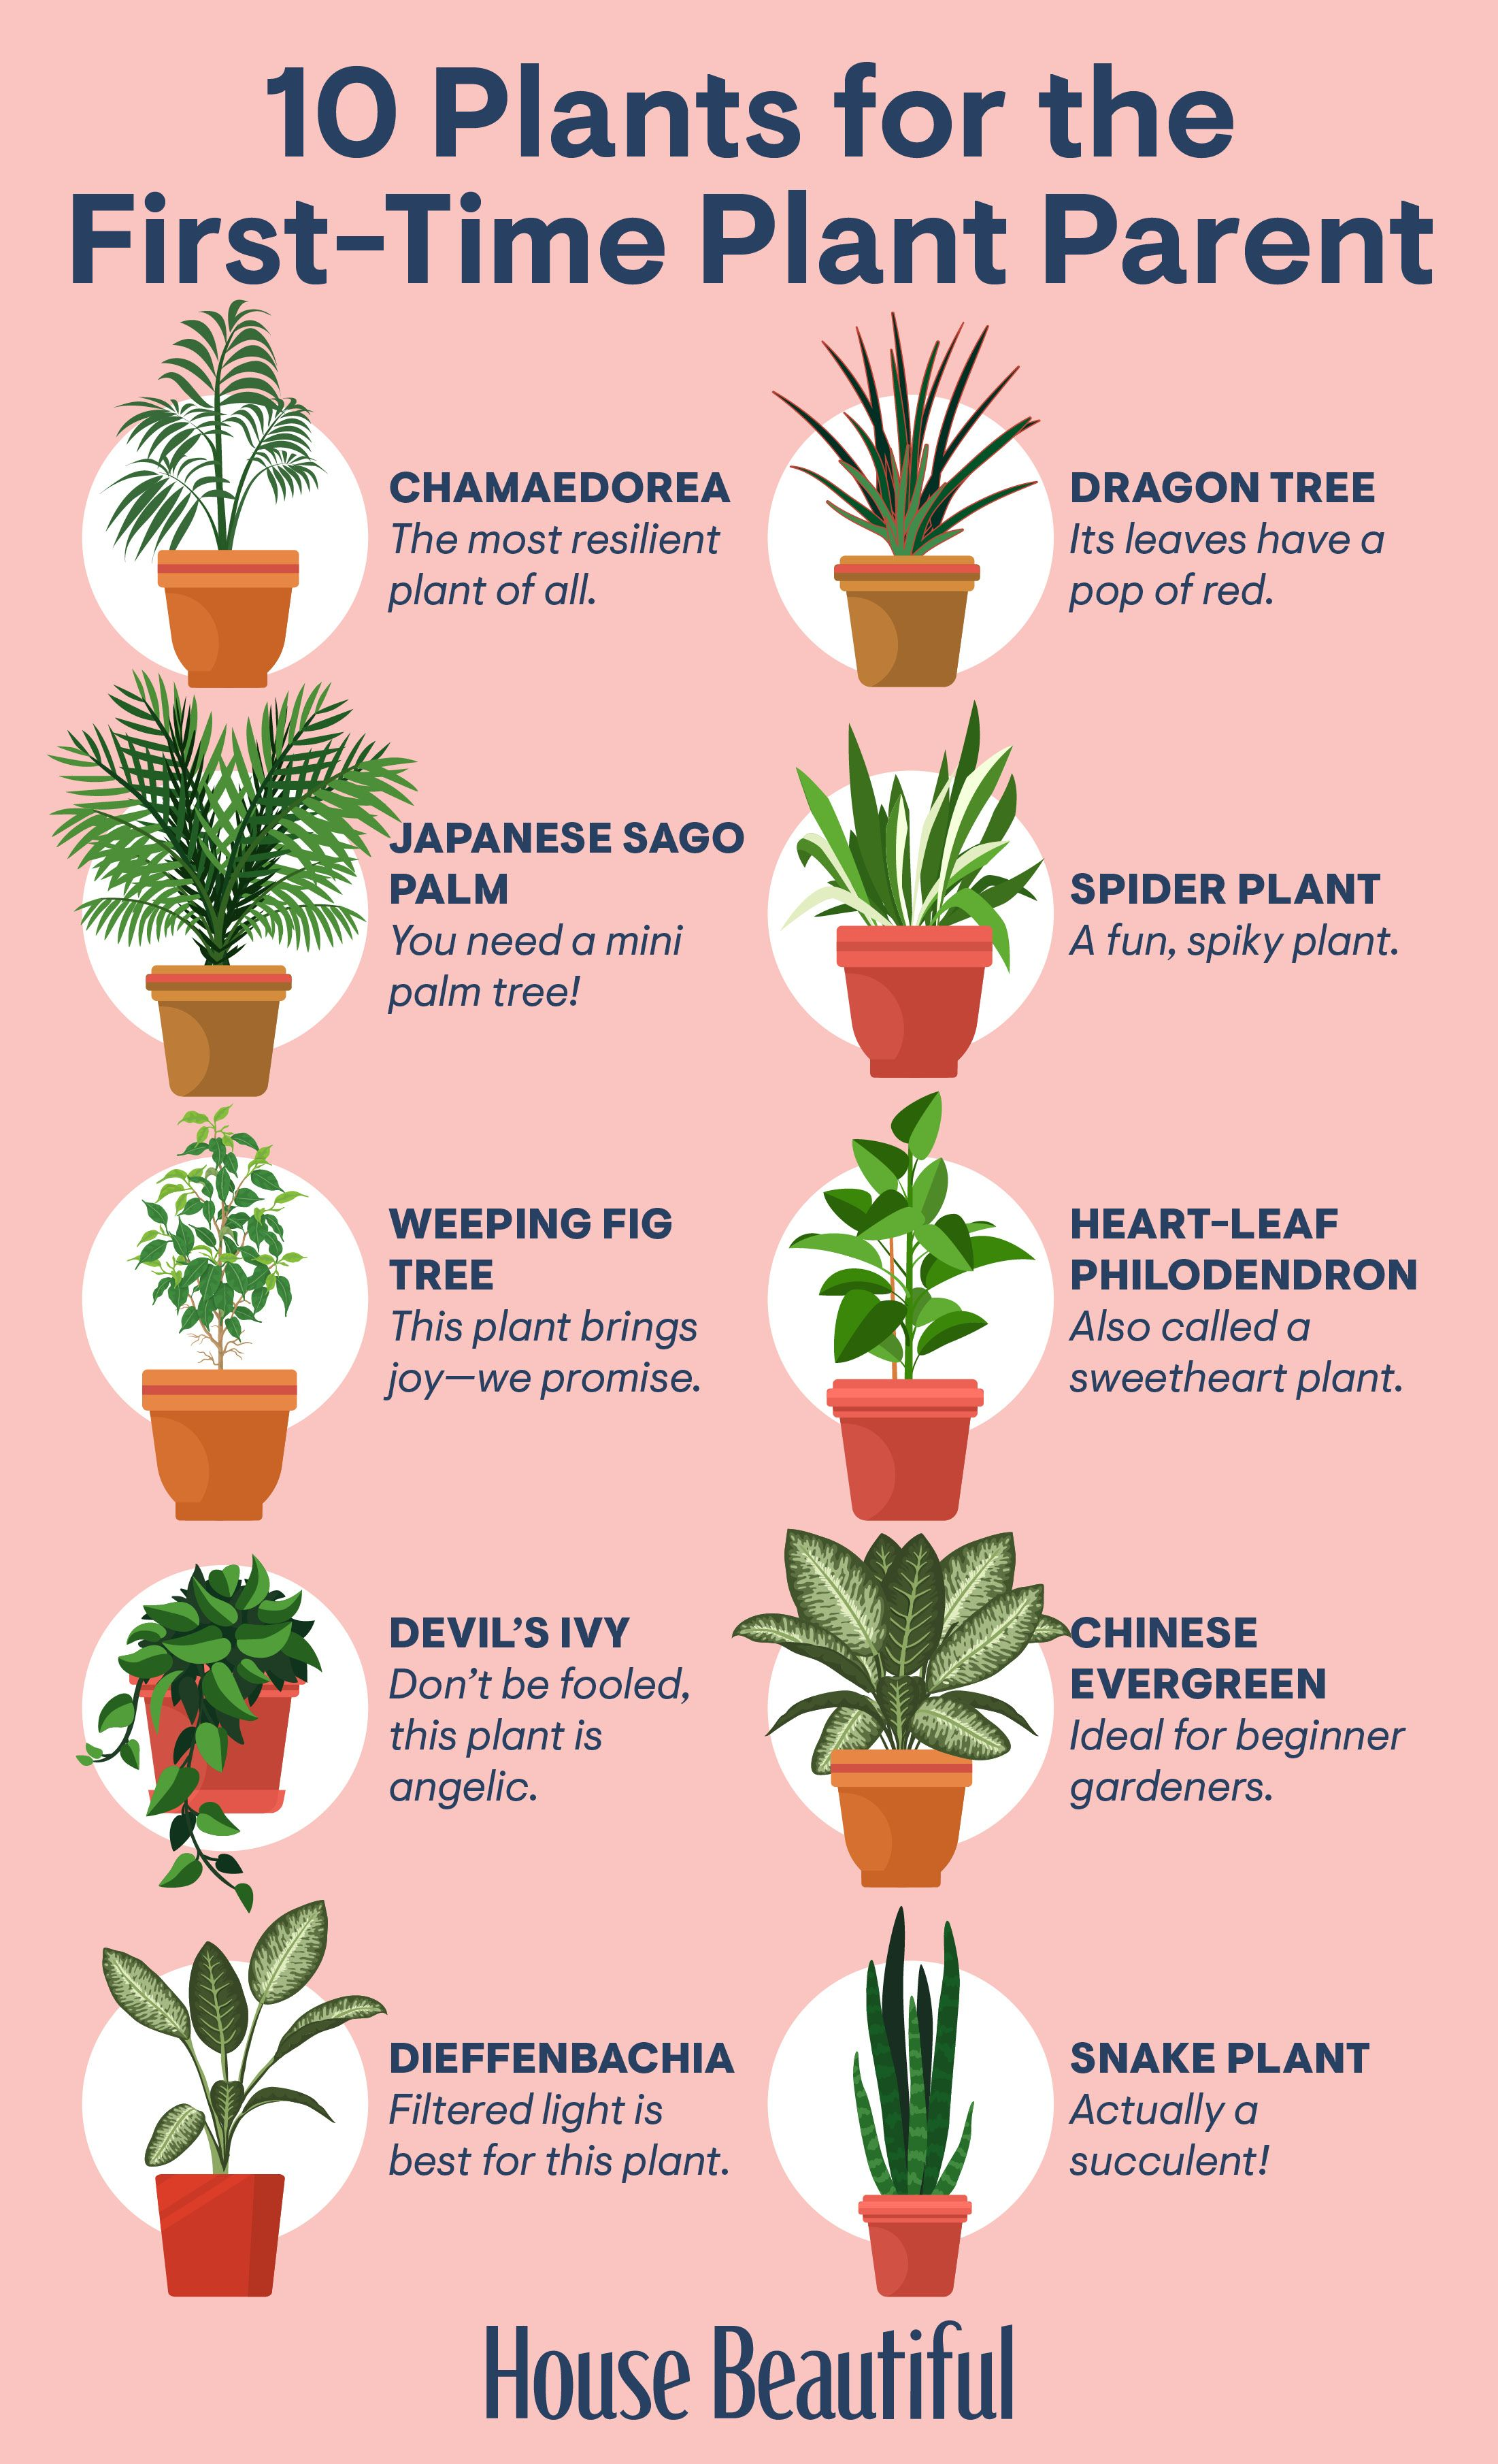 30 Houseplants That Can Survive Low Light Best Indoor Low Light Plants,Best Artificial Christmas Trees 12 Ft